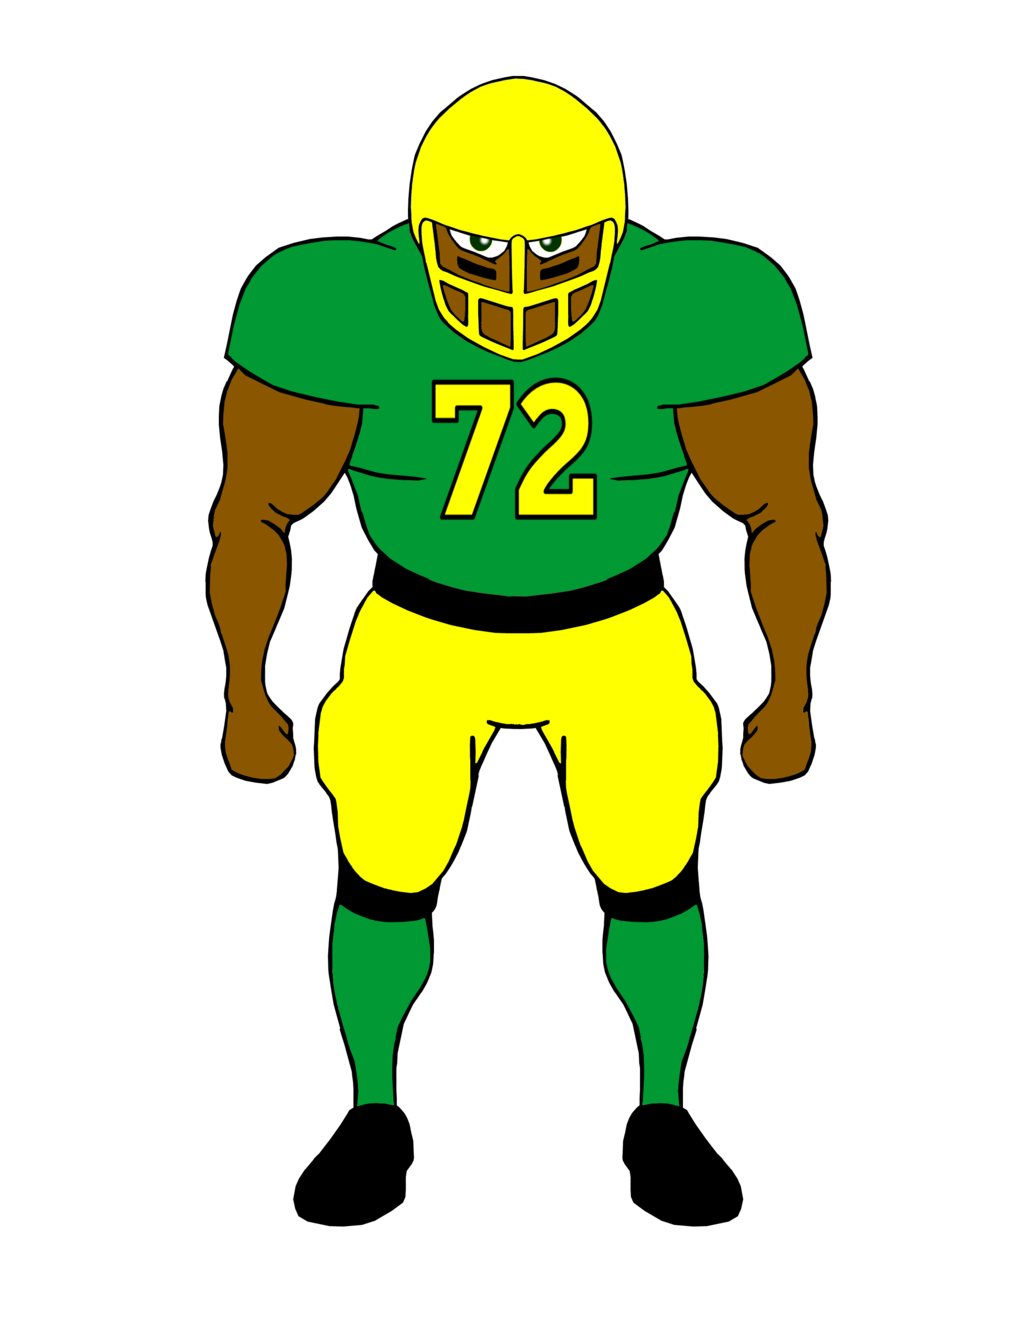 Clipart Of Football Players - ClipArt Best